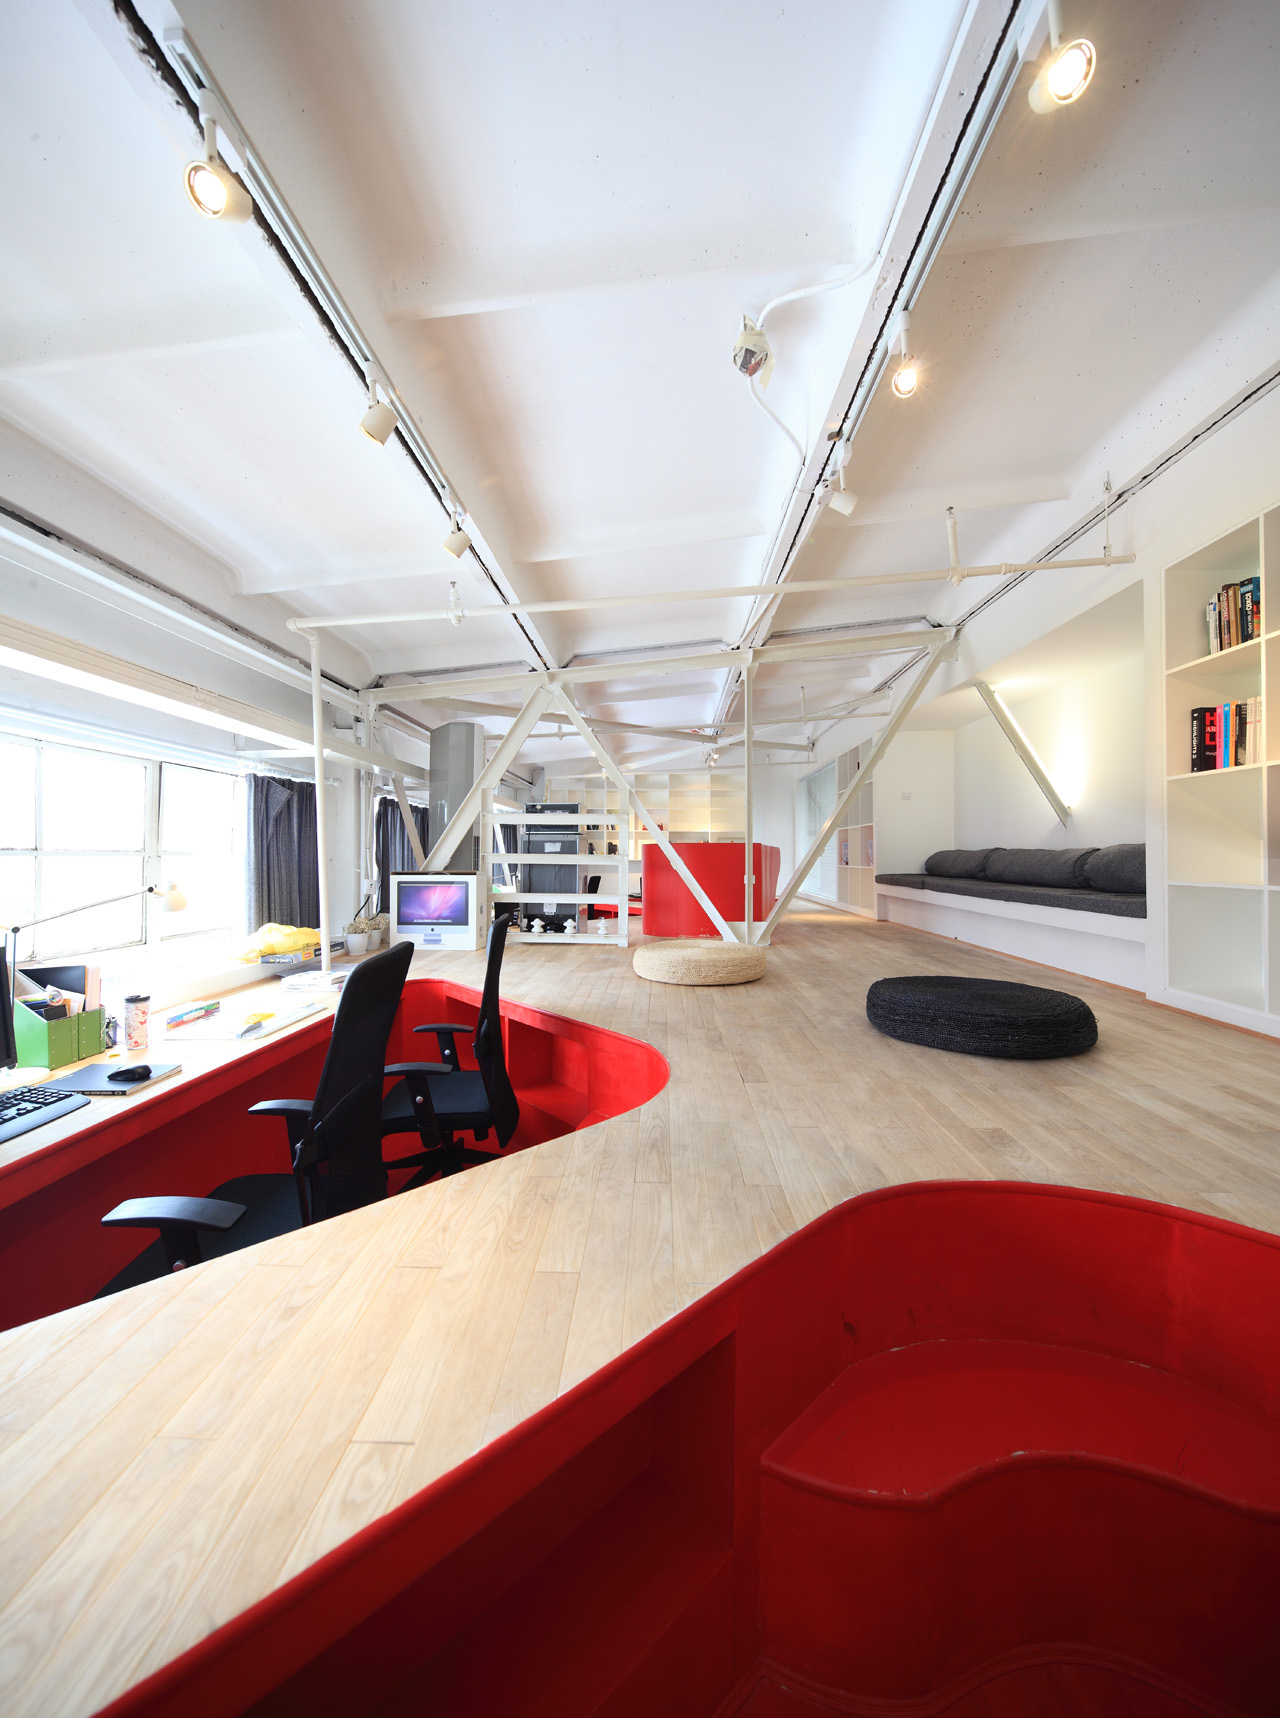 Red Town Office / Taranta Creations, © Shen Qiang / Shen Photo